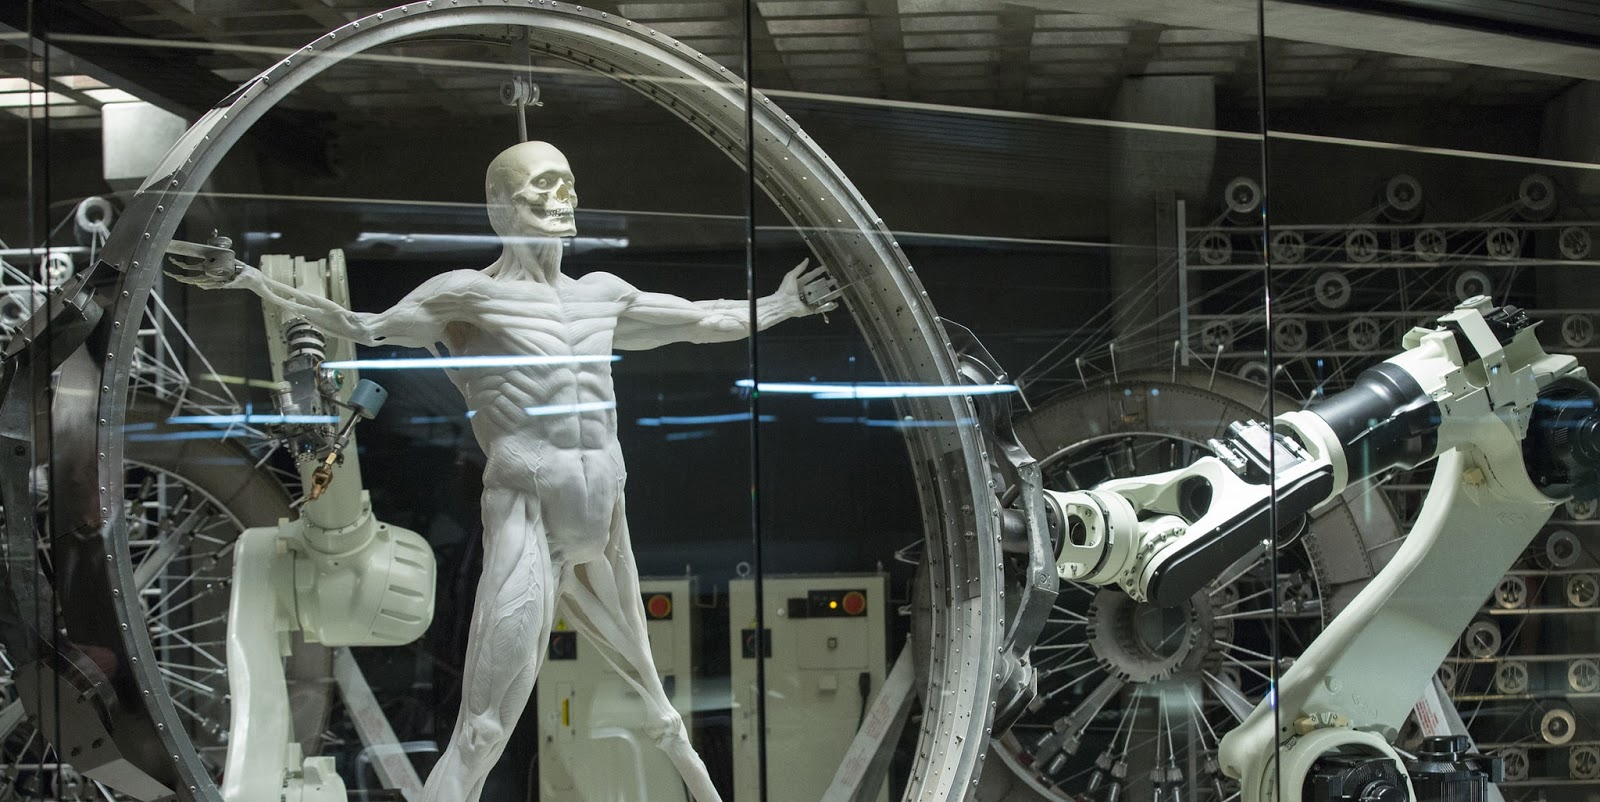 Robot from Westworld